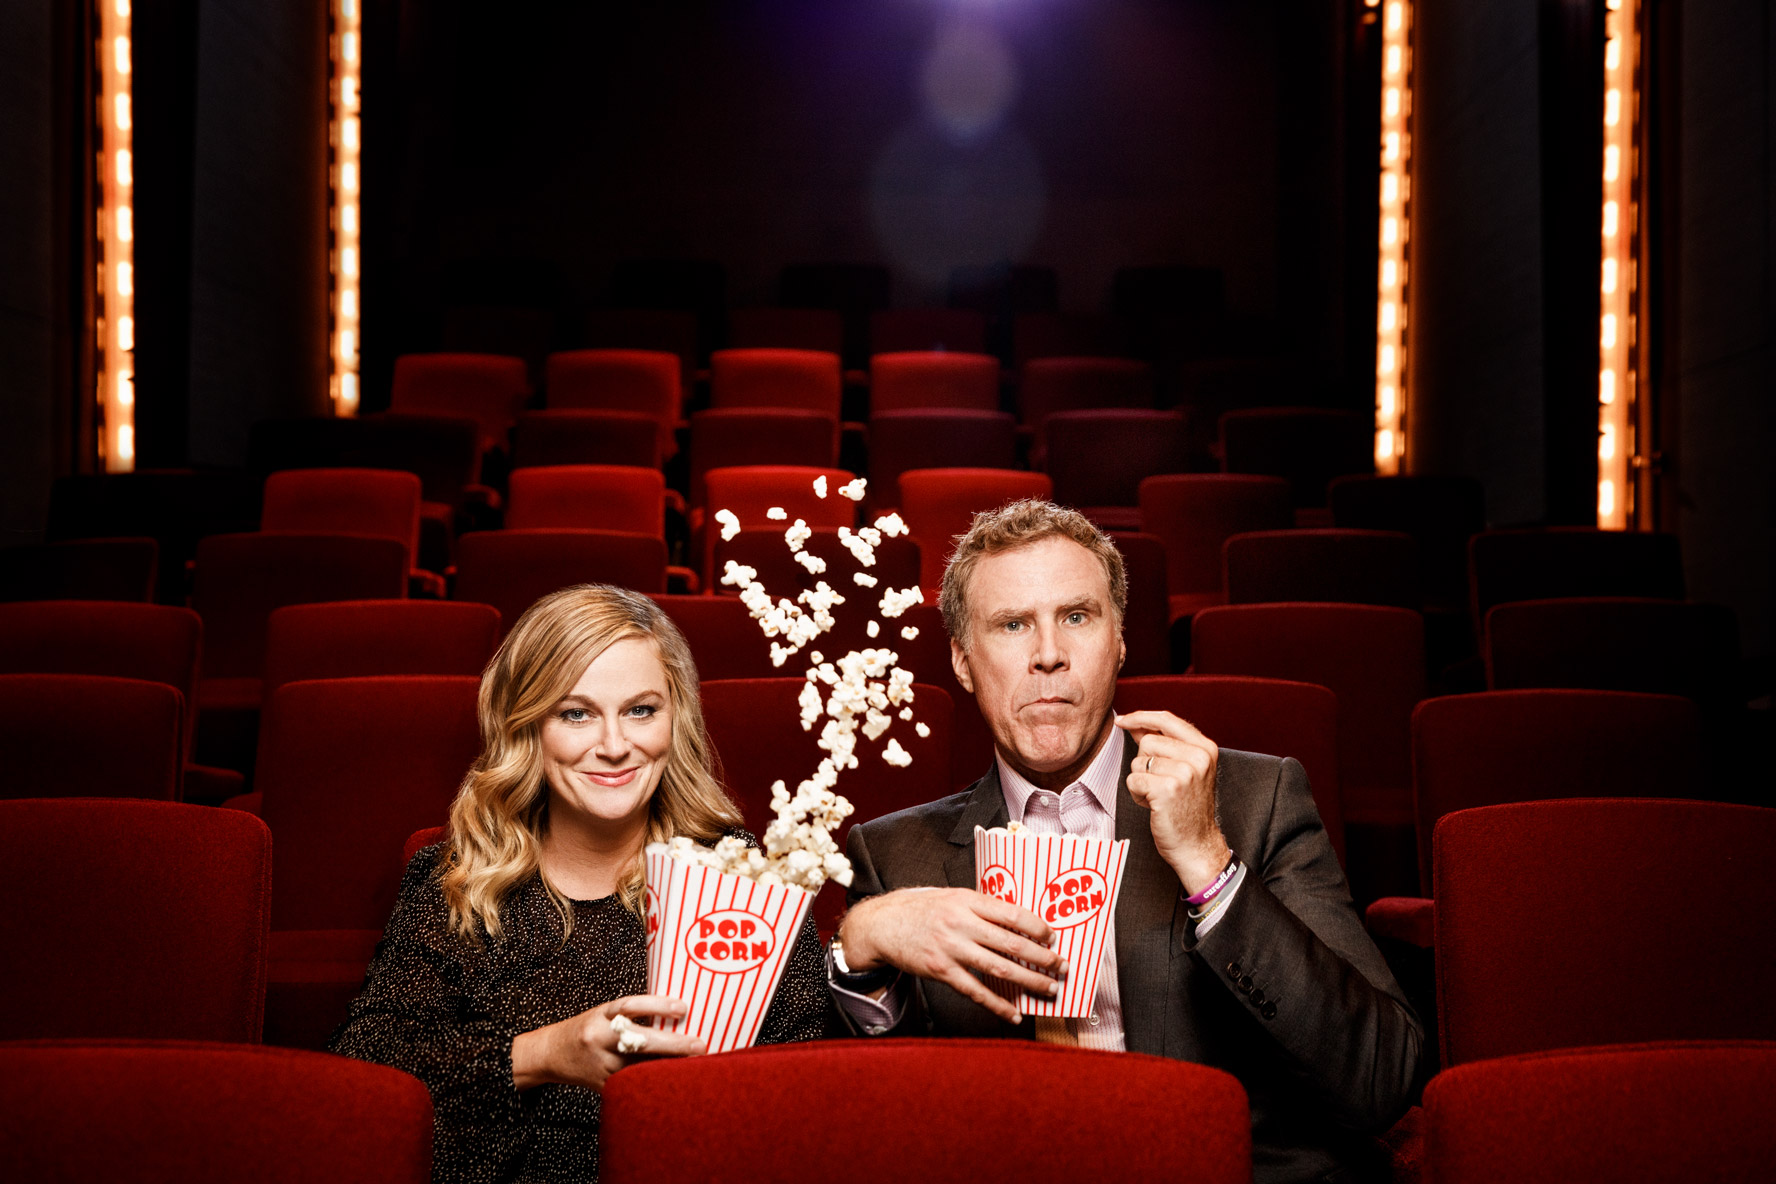 Amy Poehler & Will Ferrell